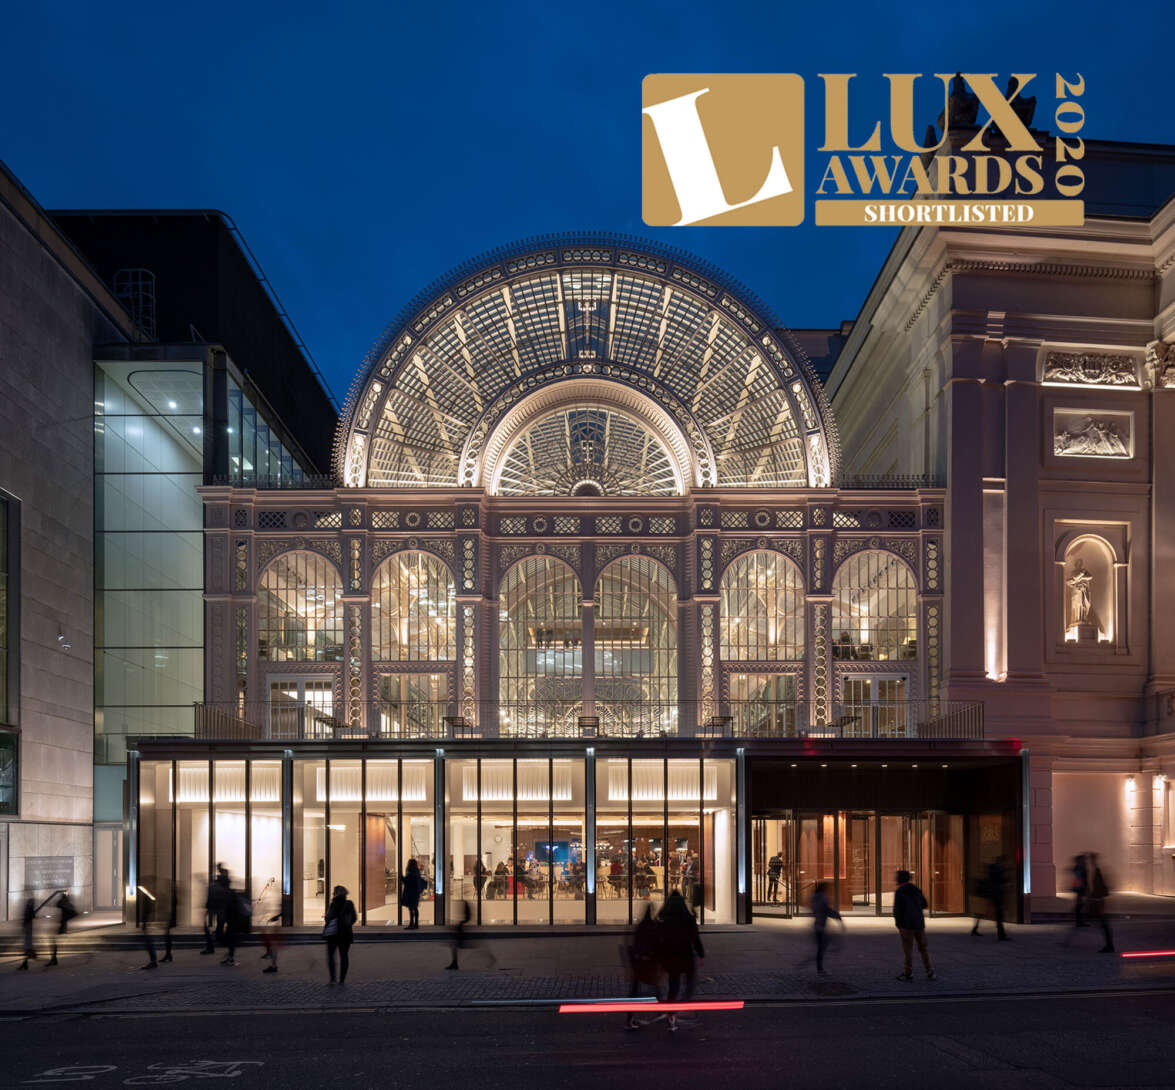 Royal Opera House shortlisted for LUX Award